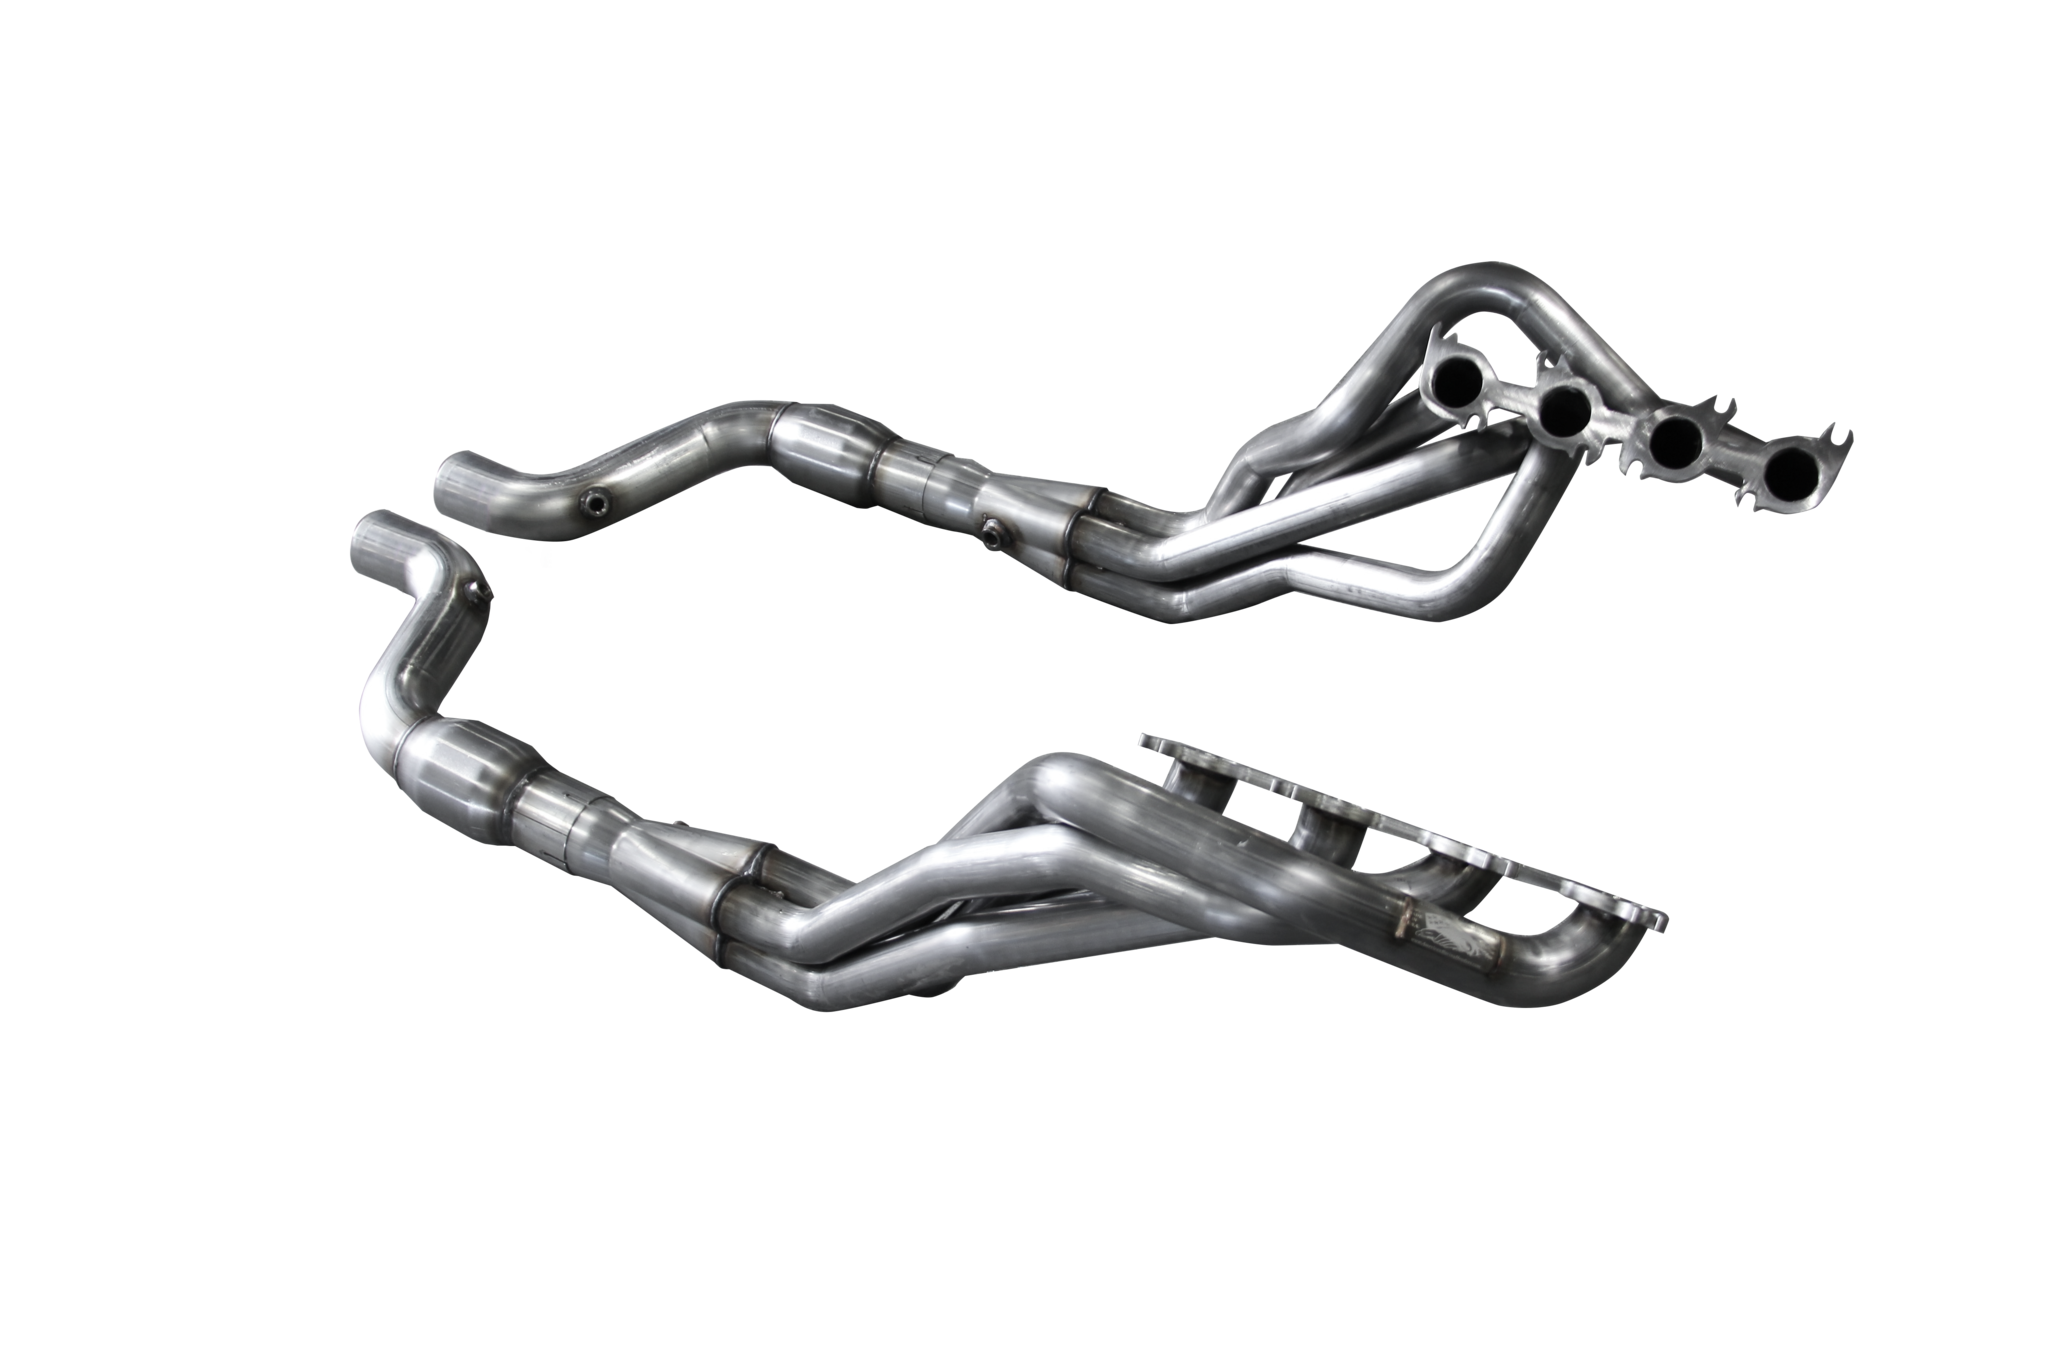 ARH 2015-2017 Ford Mustang 5.0L Coyote 1-3/4in x 3in Long System